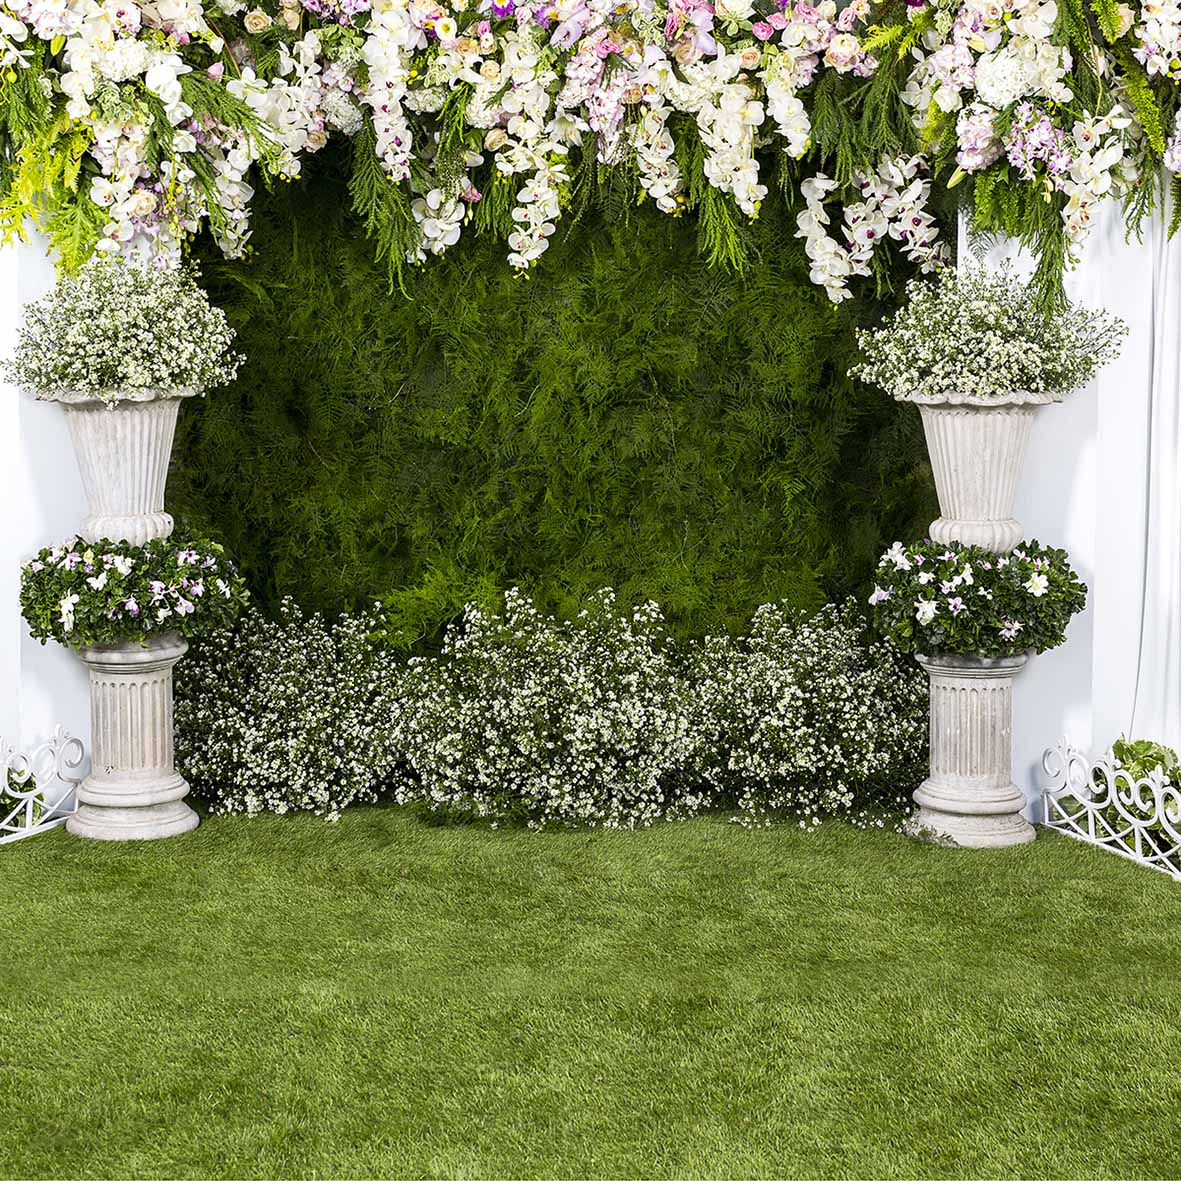 US $8 89 36% OFF|Allenjoy Wedding photography backdrop garden flower spring  green grass background photo studio photocall photophone party decor-in